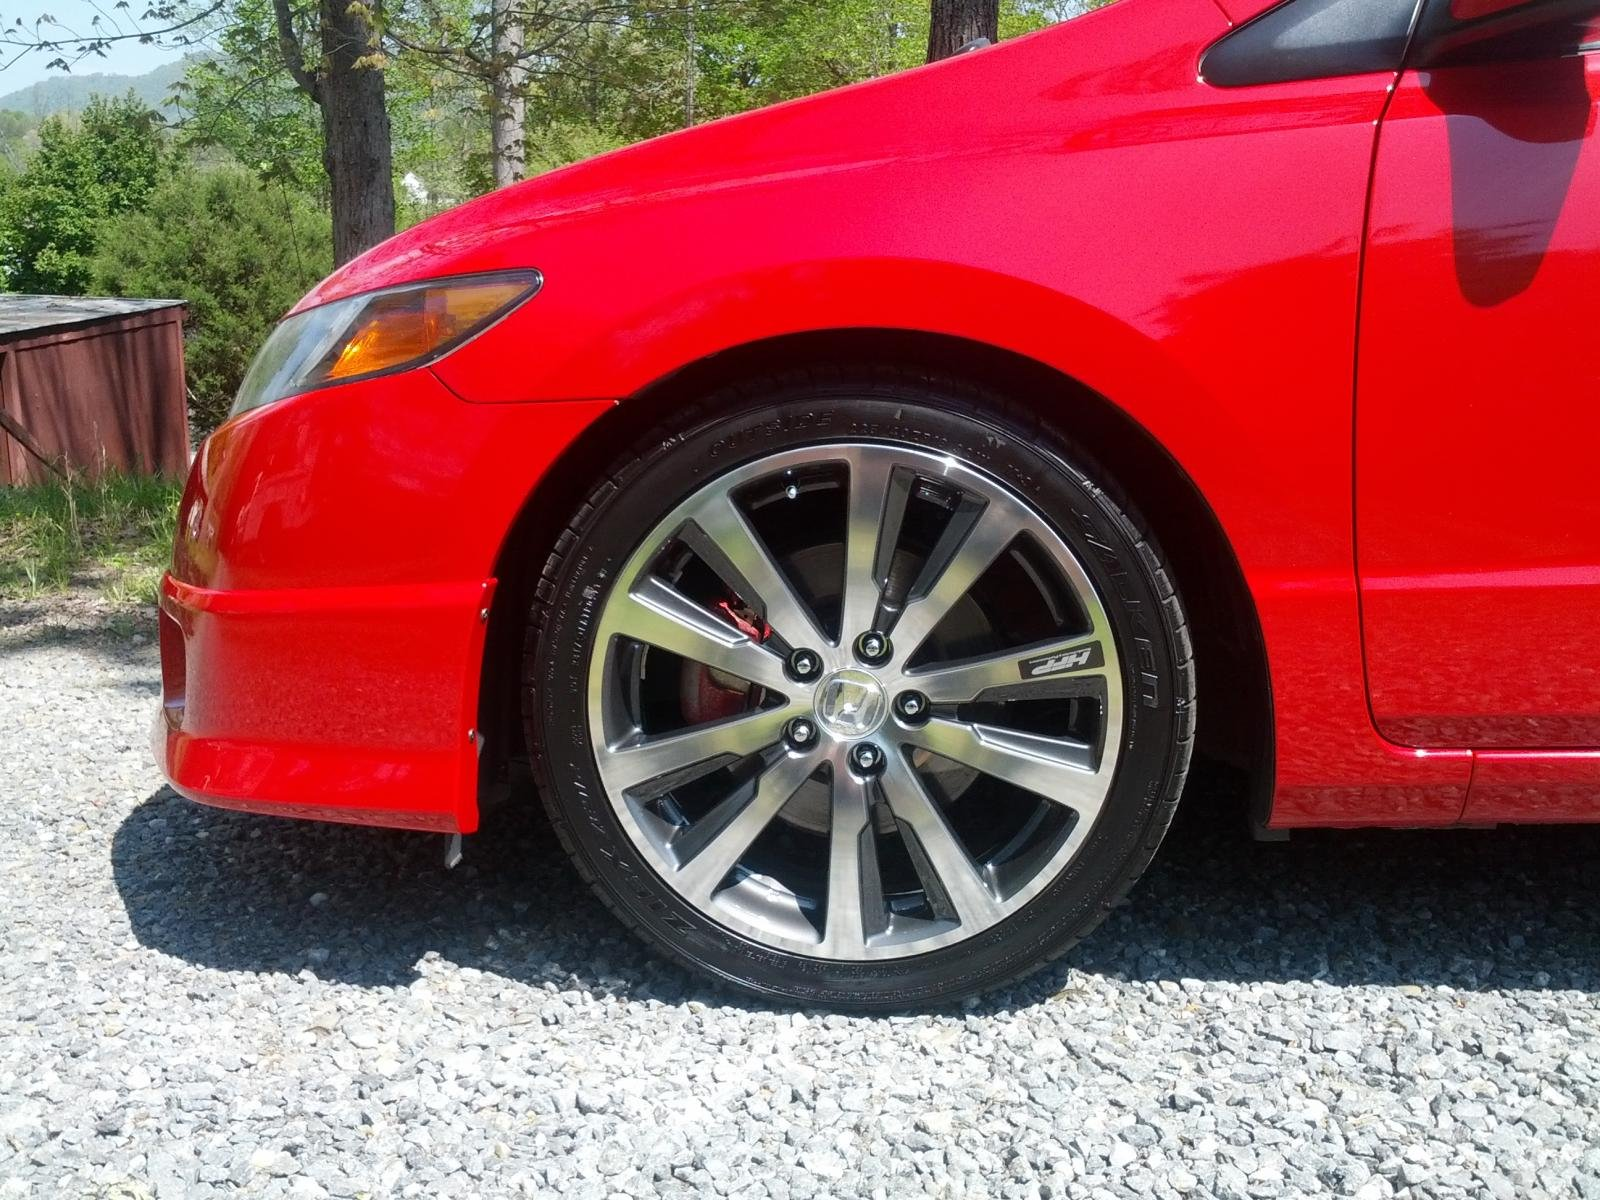 Rims Honda Civic 2012 2012 Civic si Hfp Rims